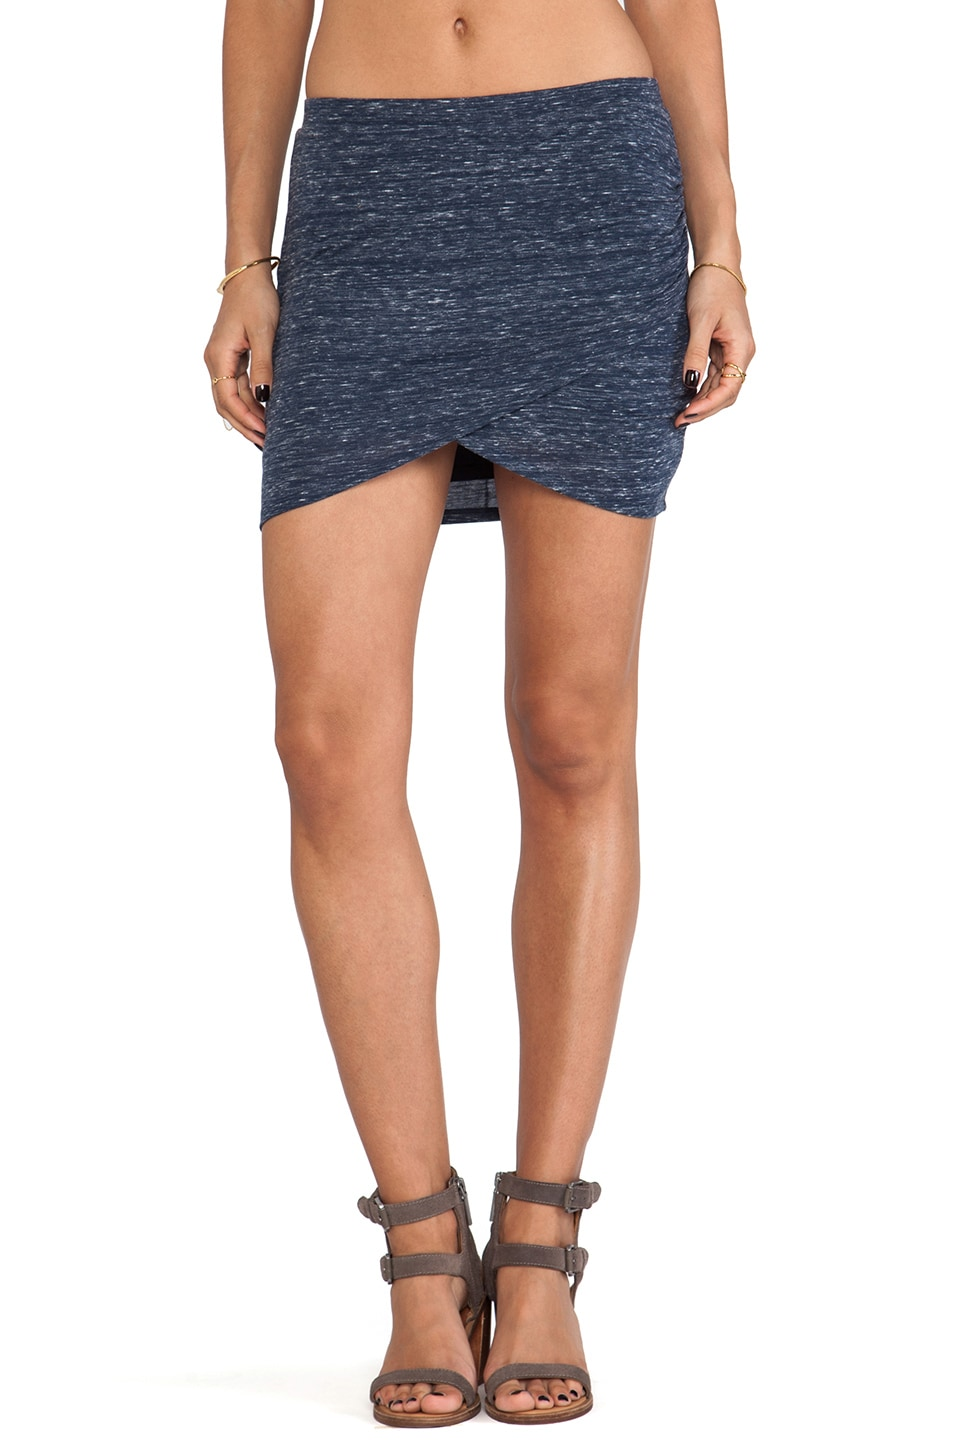 Discover mini skirts with ASOS. Shop a range of mod, mini and short skirt styles with ASOS.